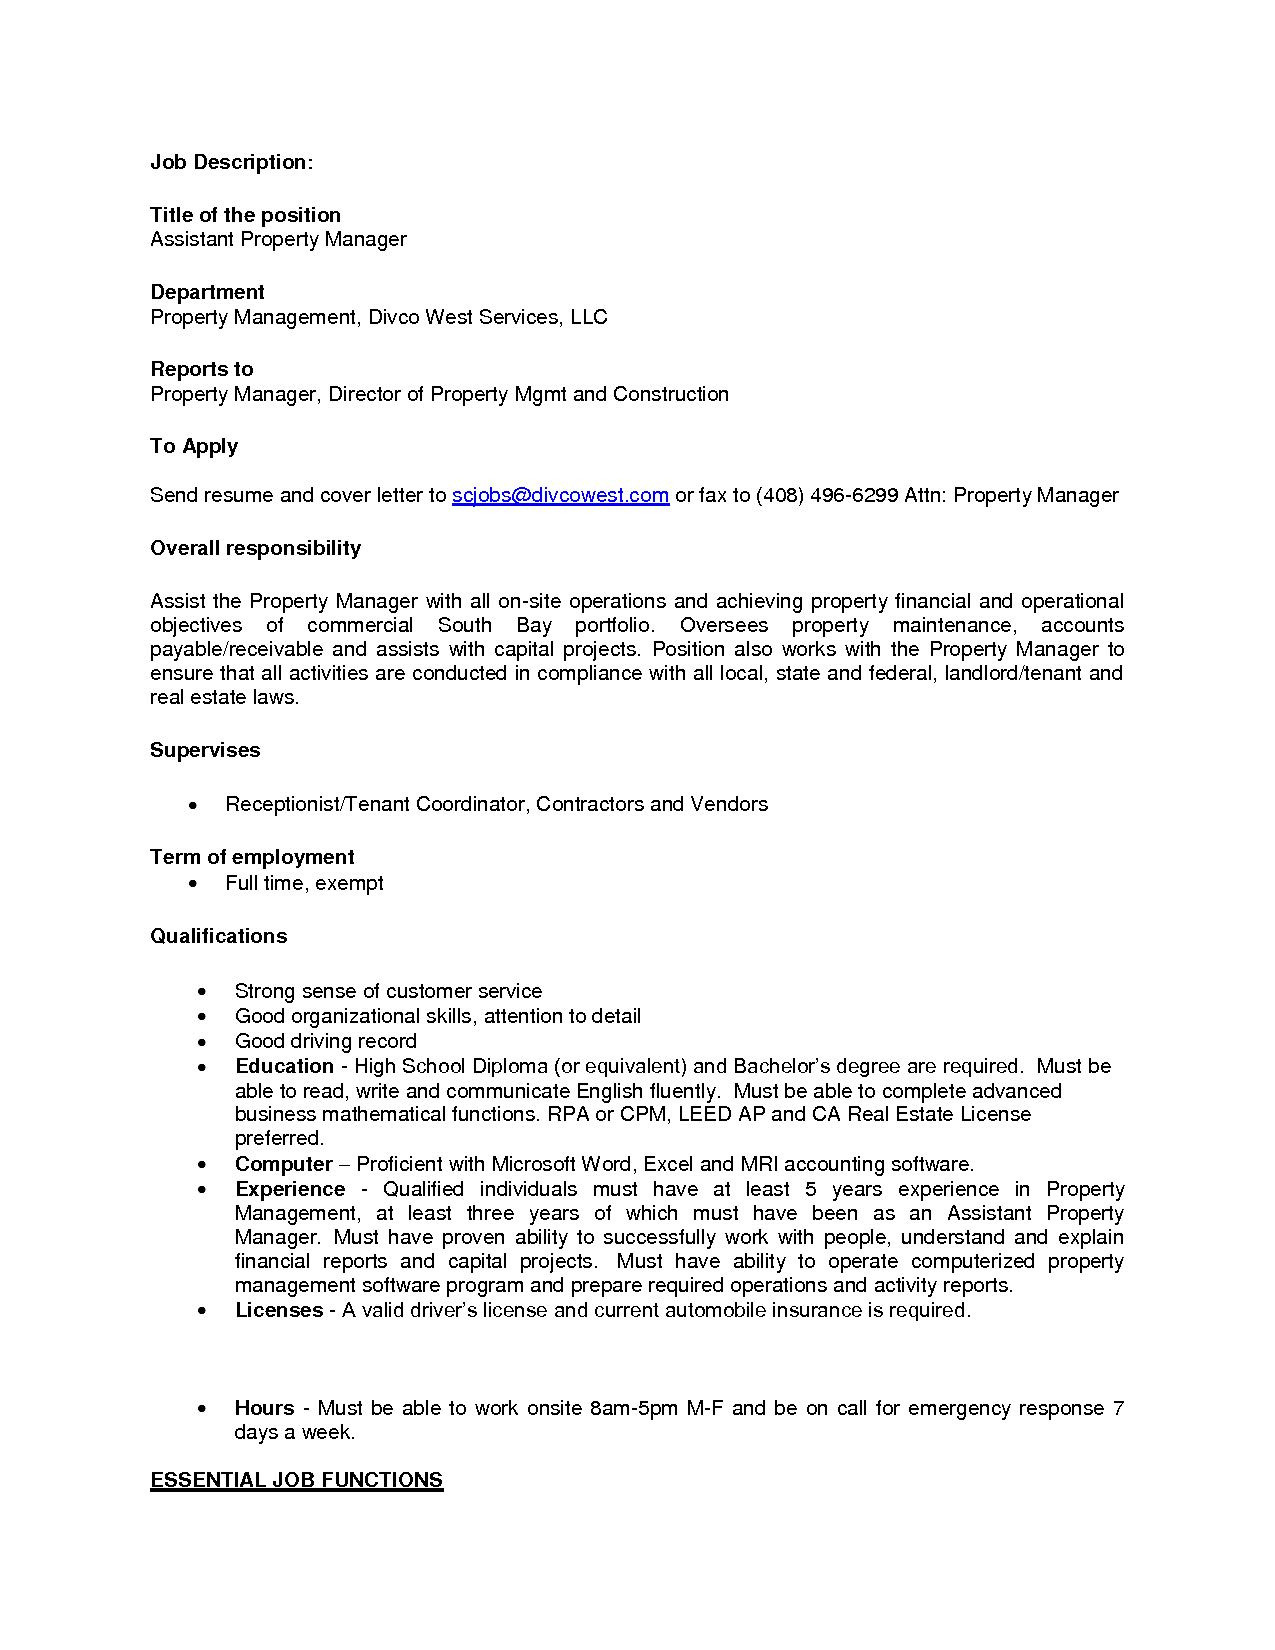 New management letter to tenants template collection letter templates new management letter to tenants template sample resume cover letter property management refrence property altavistaventures Image collections